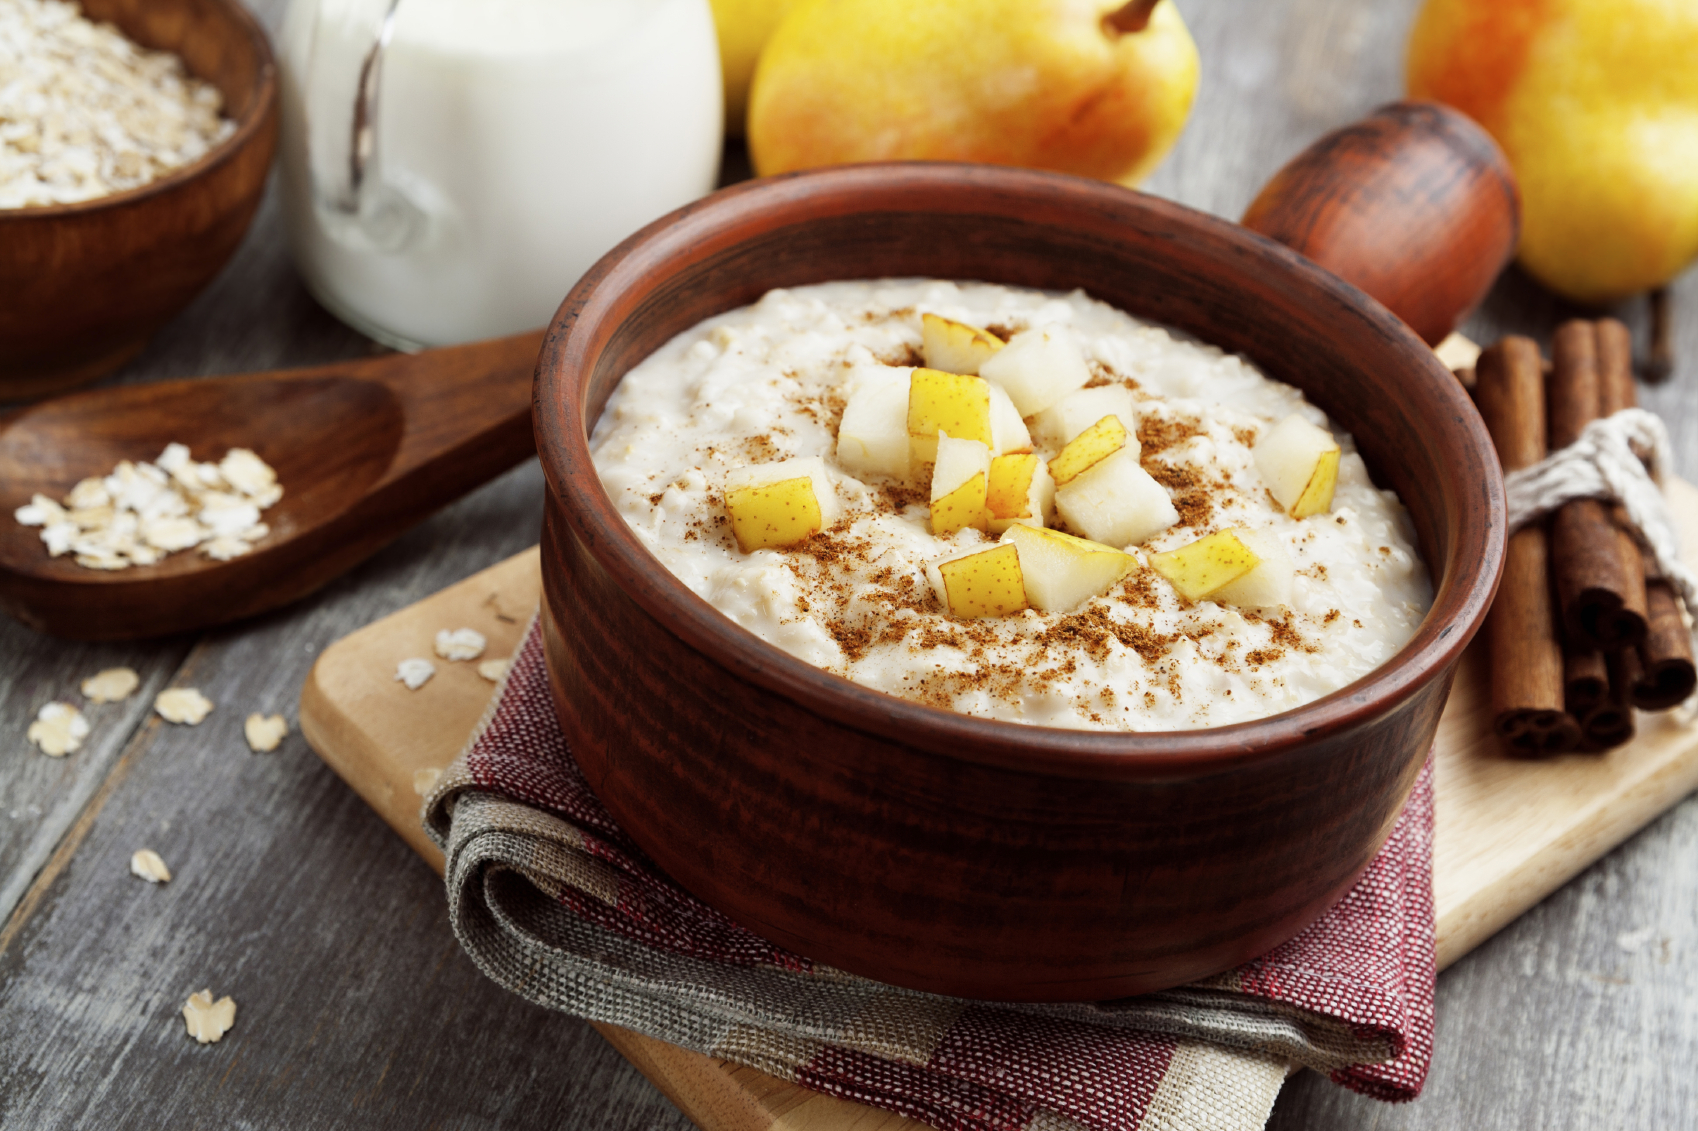 7 Best Foods to Soothe Sore Muscles